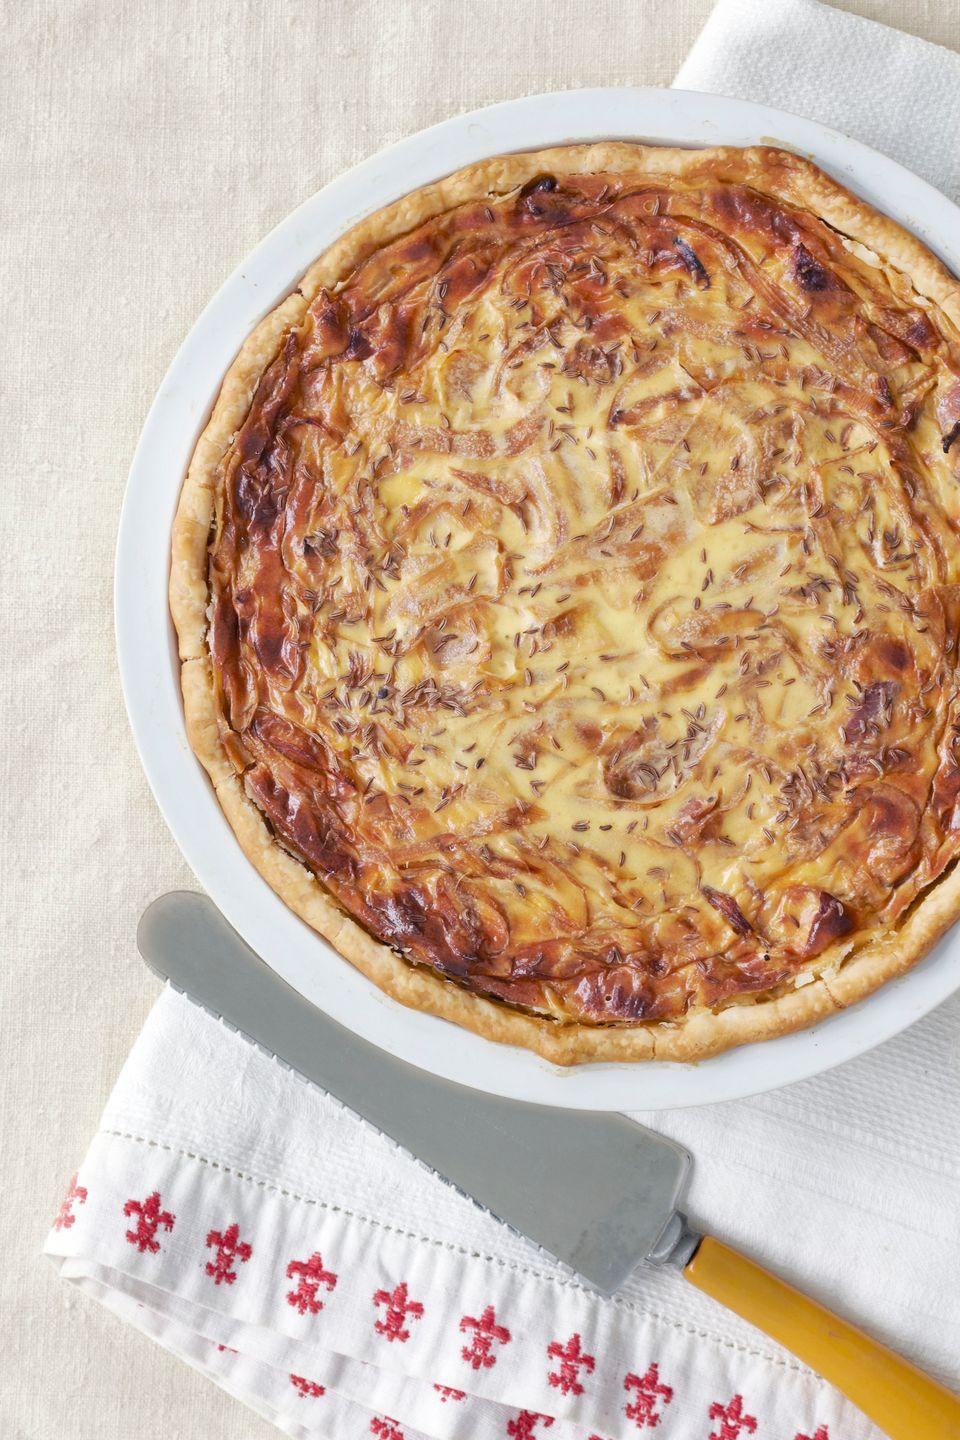 "<p>Sautéed onions, bacon, and eggs are baked inside a delicate crust.</p><p><strong><a href=""https://www.countryliving.com/food-drinks/recipes/a3523/onion-pie-recipe-clv1210/?click=recipe_sr"" rel=""nofollow noopener"" target=""_blank"" data-ylk=""slk:Get the recipe"" class=""link rapid-noclick-resp"">Get the recipe</a>.</strong></p>"